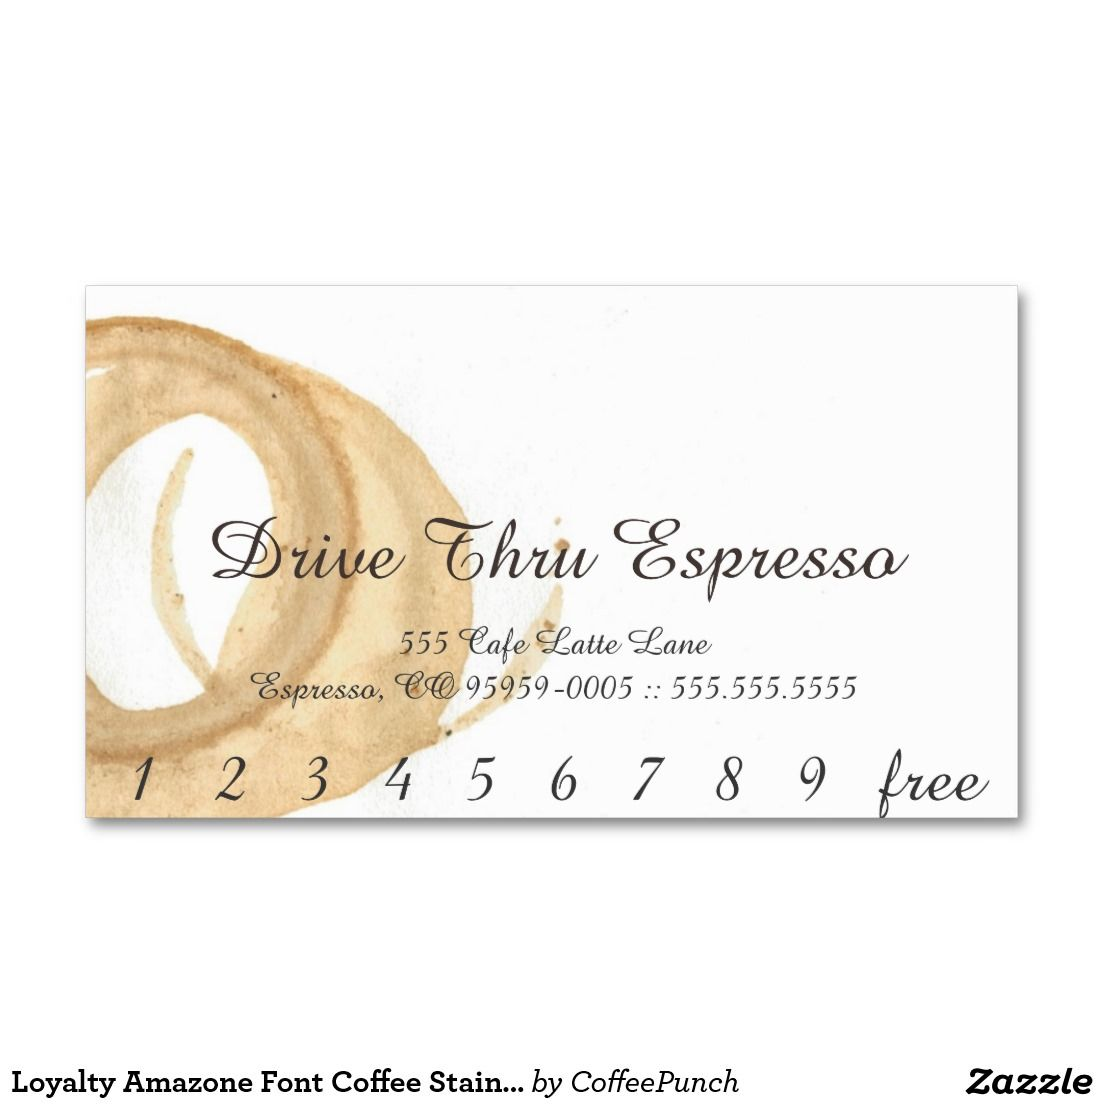 Loyalty Amazone Font Coffee Stain Punchcard Business Card | Business ...